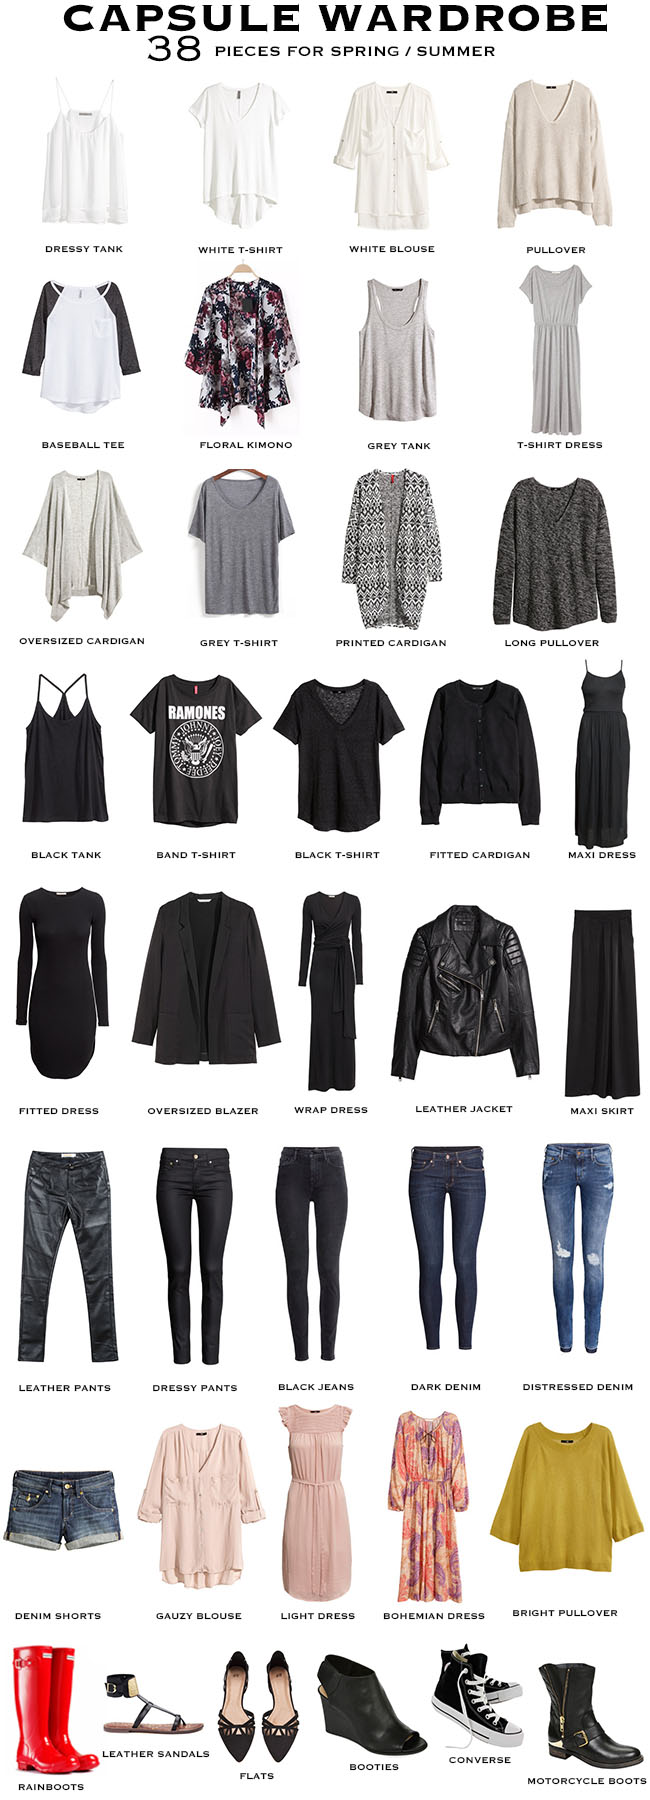 Capsule Wardrobe for Spring / Summer Final Draft ...